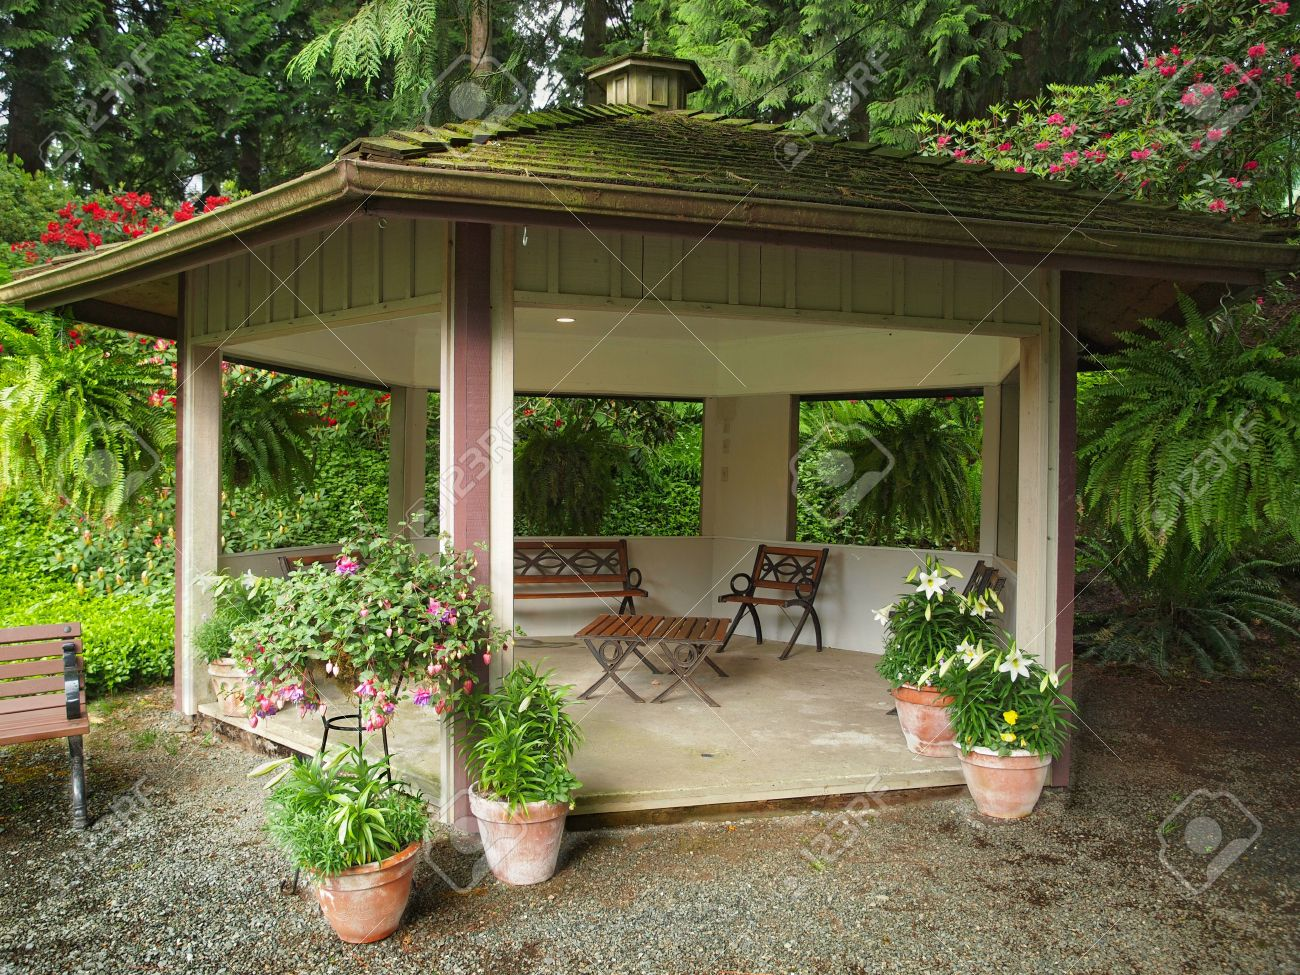 Beau Stock Photo   Woodent Gazebo With Roof Covered With Moss In The Garden